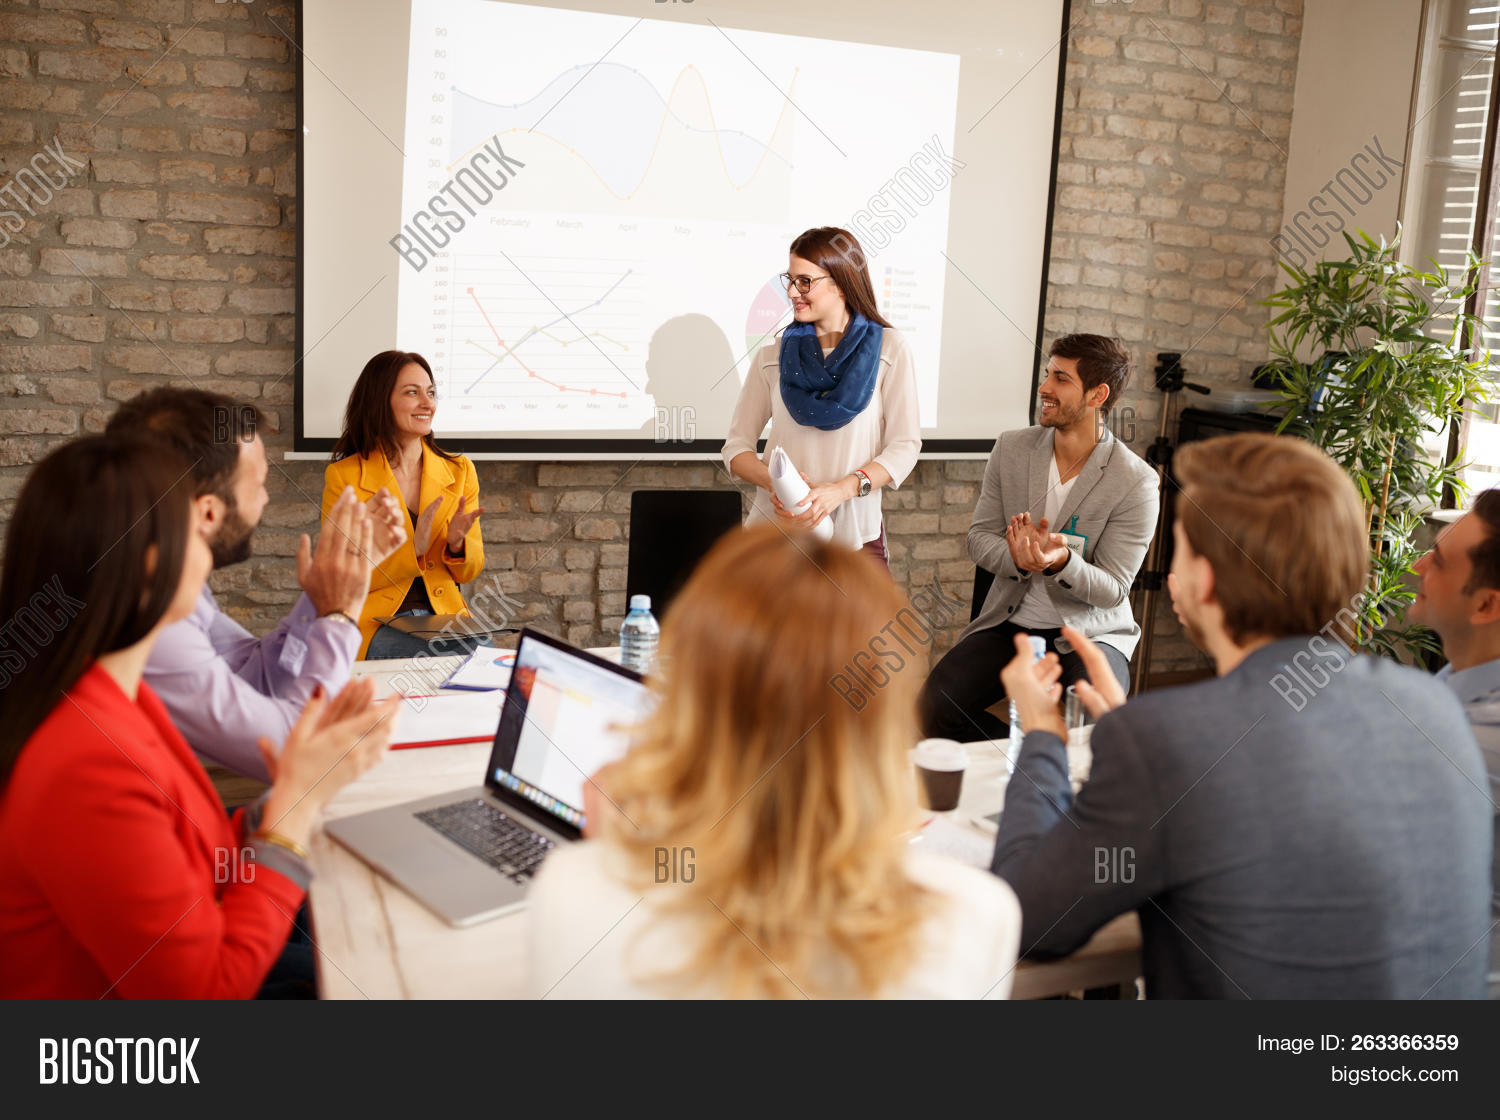 applause,audience,background,board,business,businessmen,businesspeople,businesswoman,caucasian,charts,clapping,colleagues,communication,company,corporation,education,employee,employees,employment,exposure,female,finance,finished,firm,get,group,horizontal,indoor,job,lecture,male,manager,meeting,men,office,people,presentation,report,room,seminar,speech,successfully,talking,team,technology,together,verbal,woman,working,young